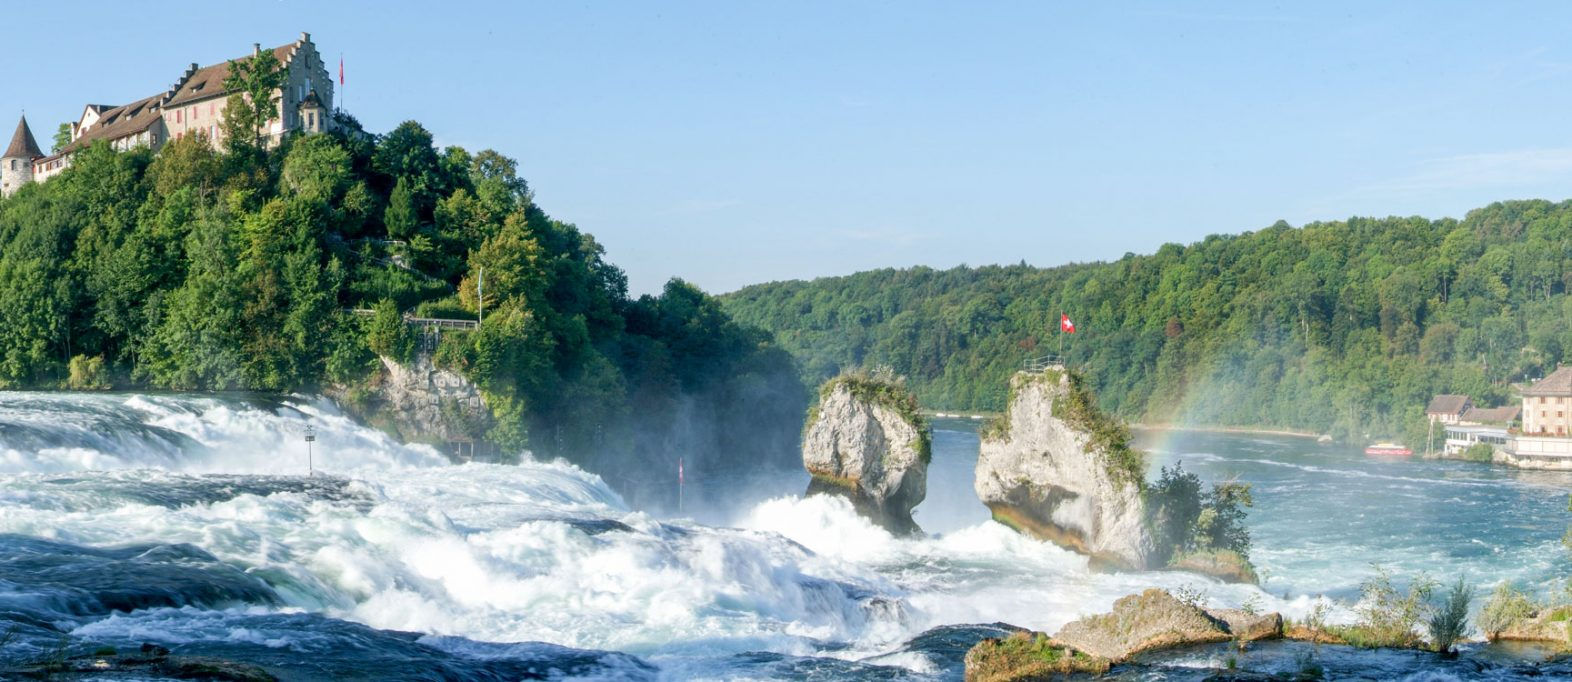 Rheinfall Neuhausen (credit: Adobe Stock ID: 140601308)